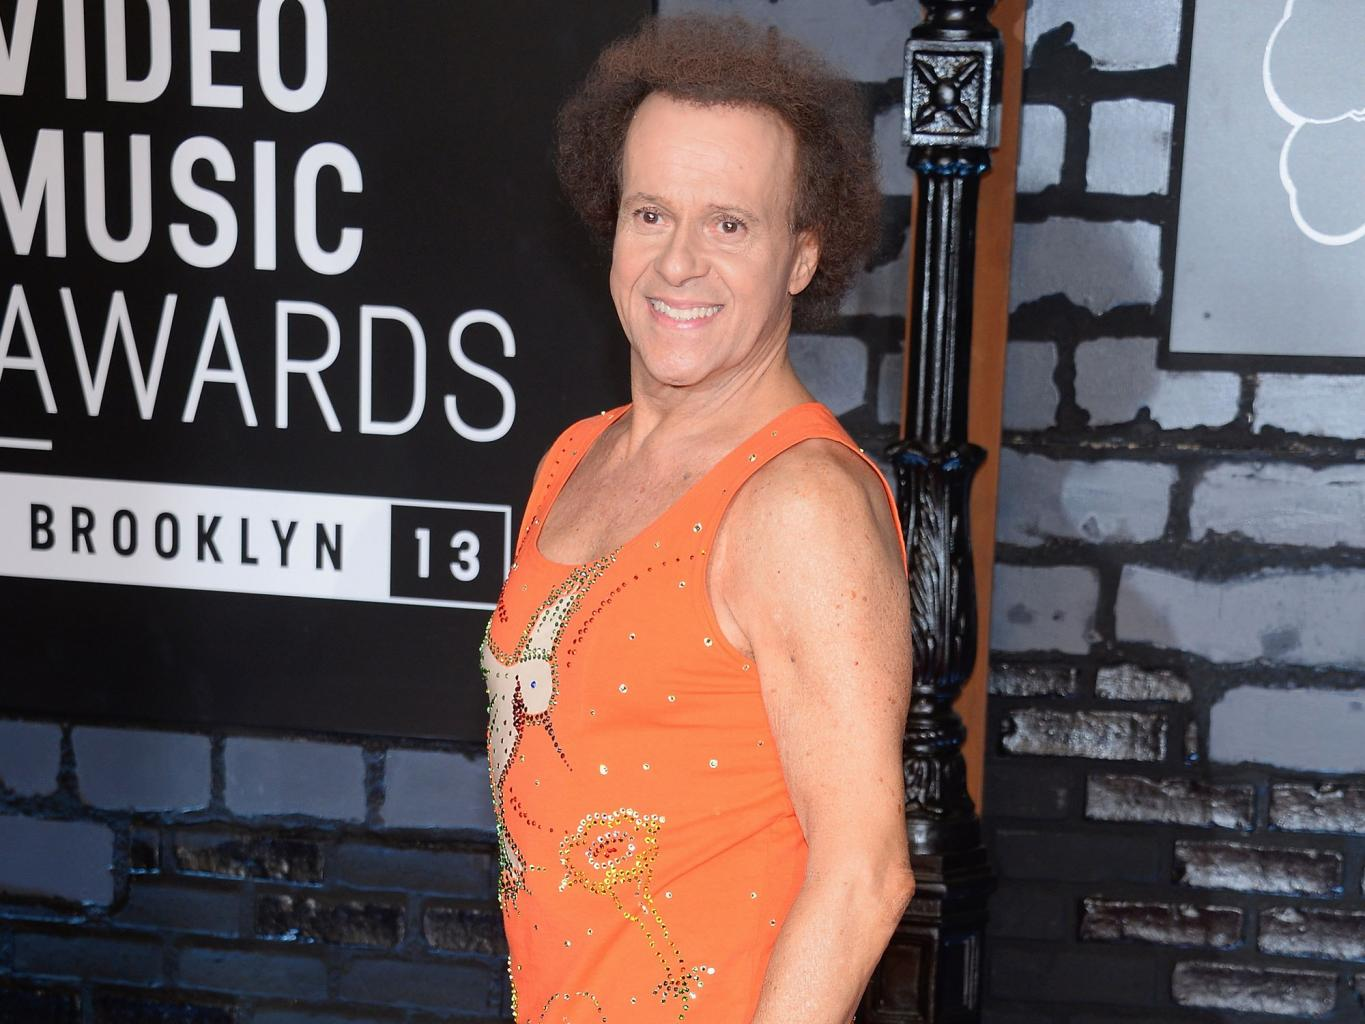 Richard Simmons' Rep Explains Why They're Not Involved with the Podcast: 'The Truth Is That He's Fine'